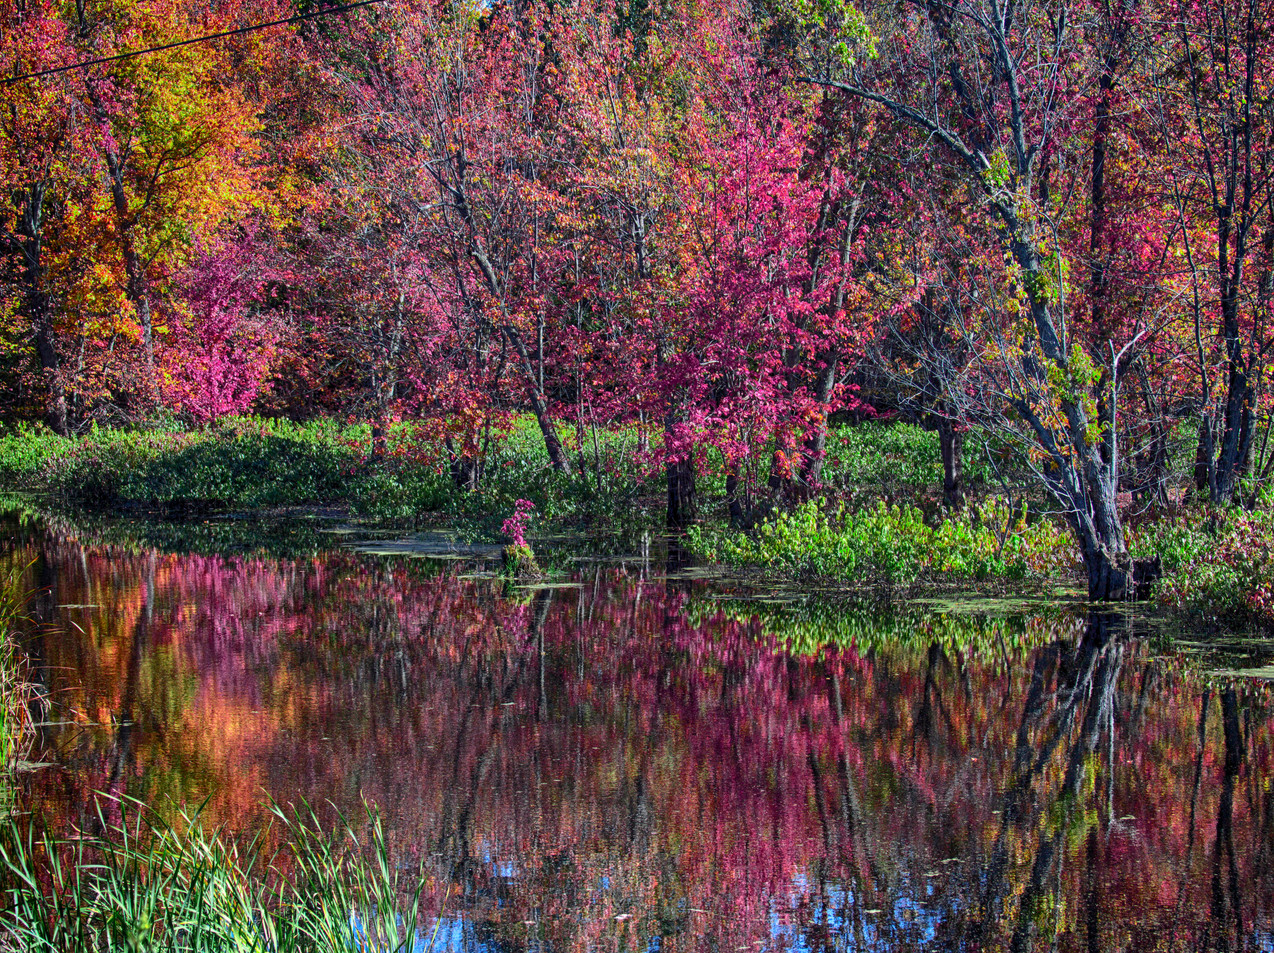 Foliage Reflections In A Small Pond